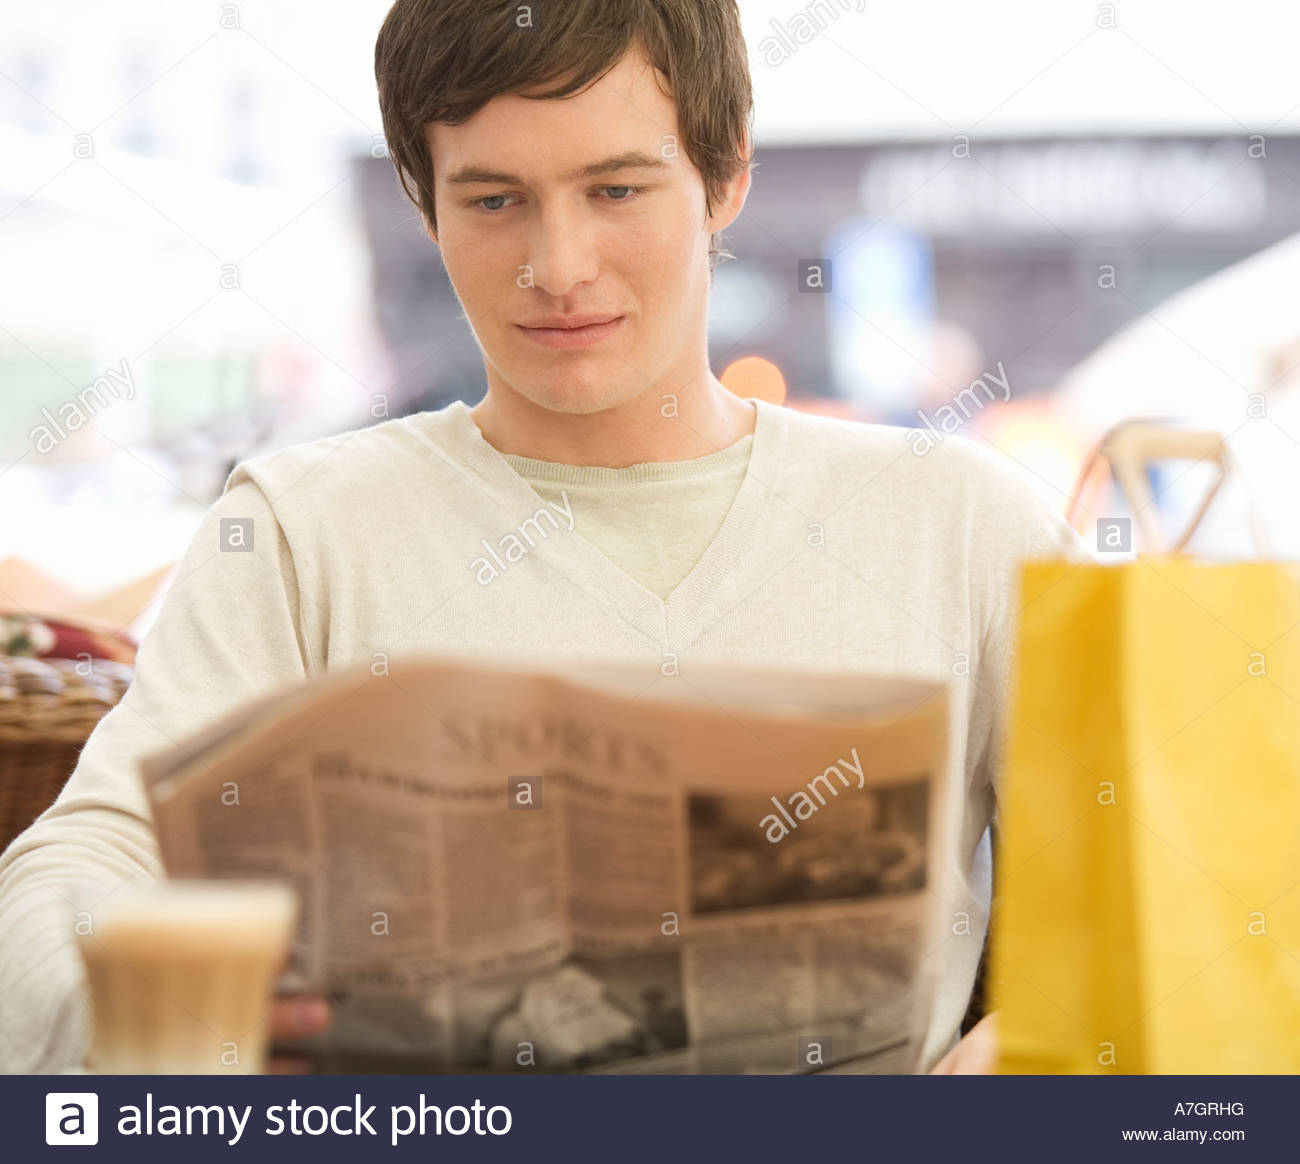 A young man having a break whilst out shopping - Stock Image